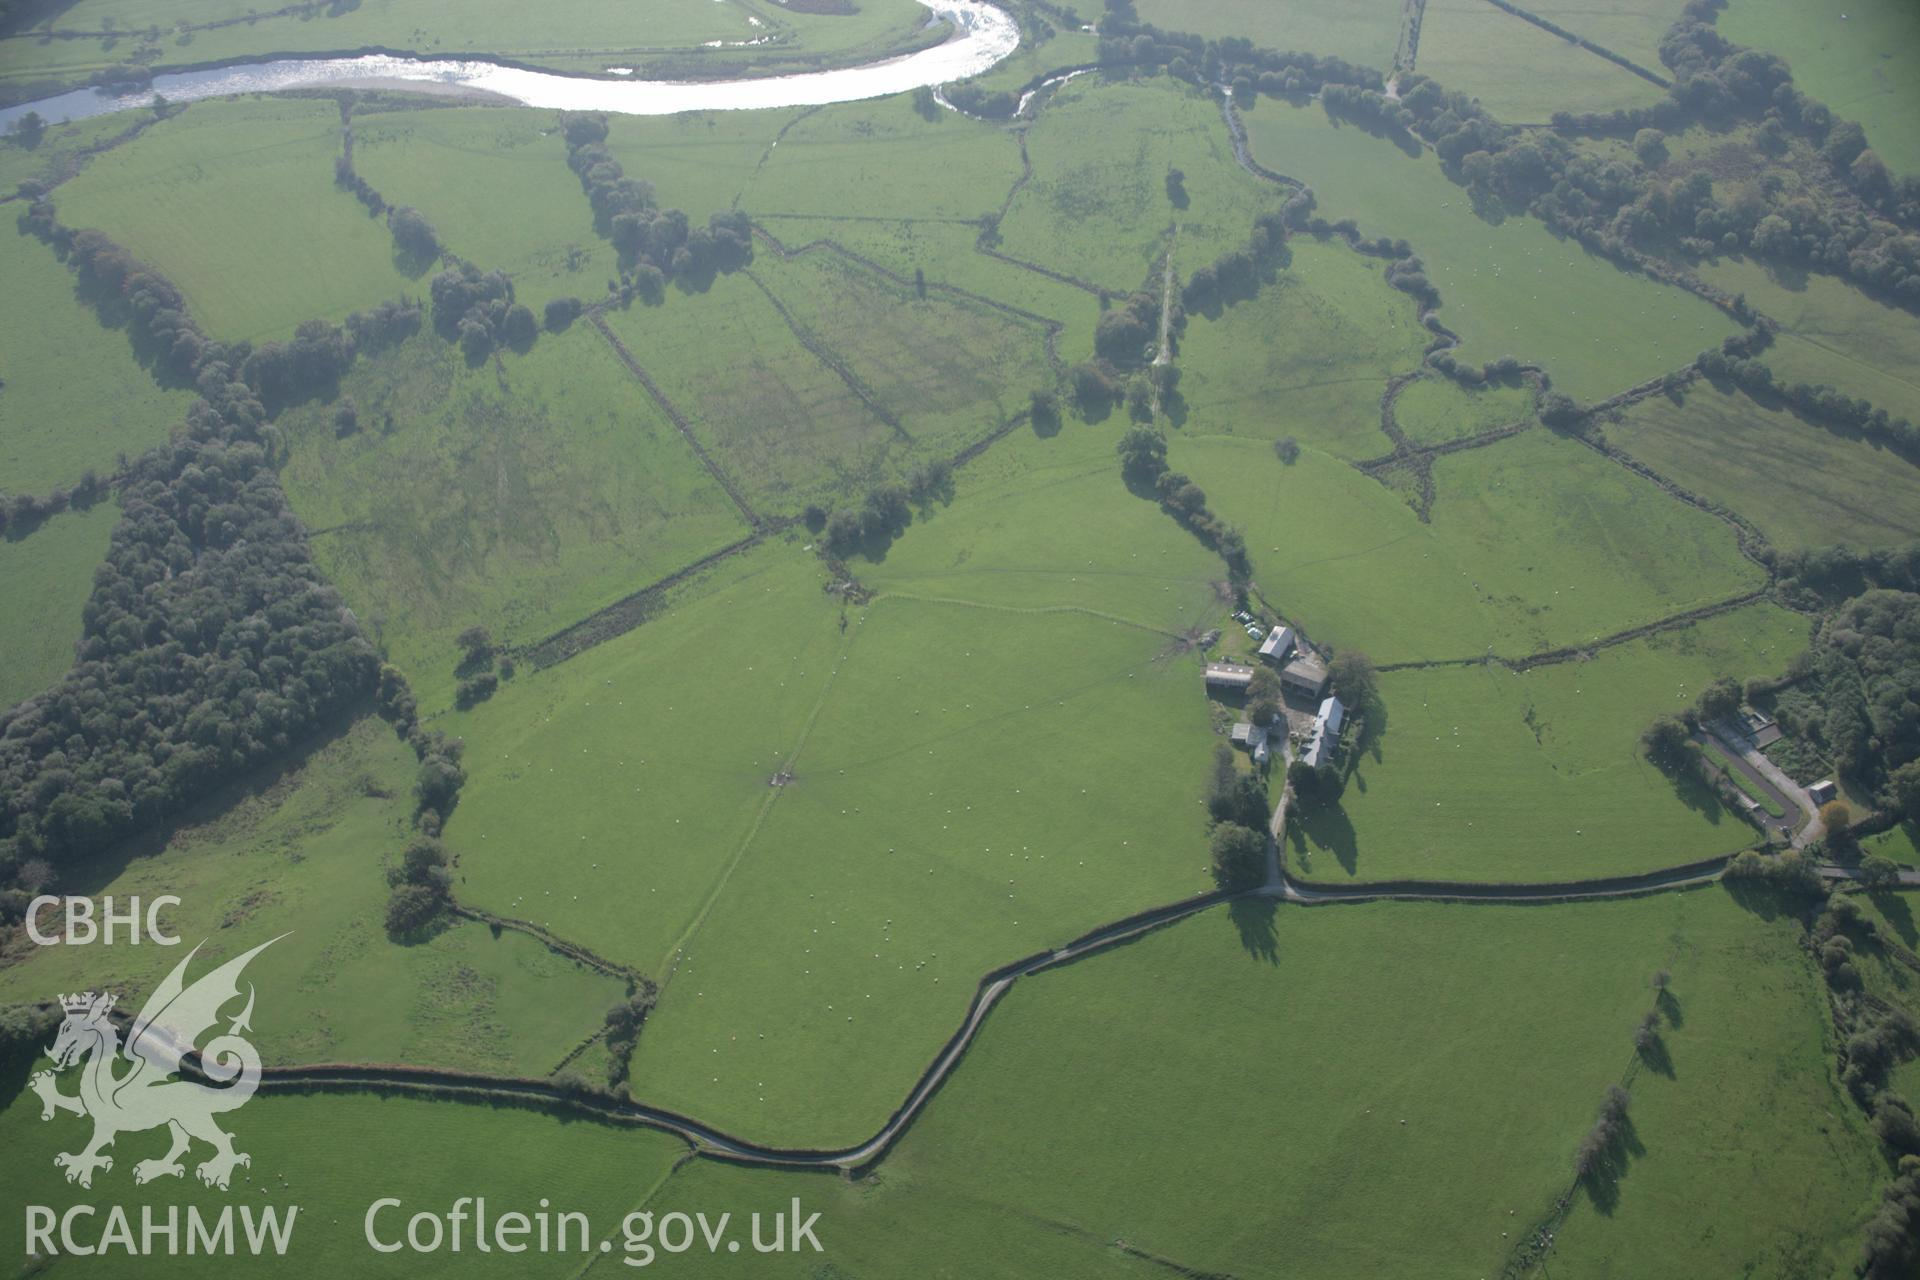 RCAHMW colour oblique aerial photograph of Cefn Caer Roman Fort, Pennal. A wide view from the north-east. Taken on 17 October 2005 by Toby Driver